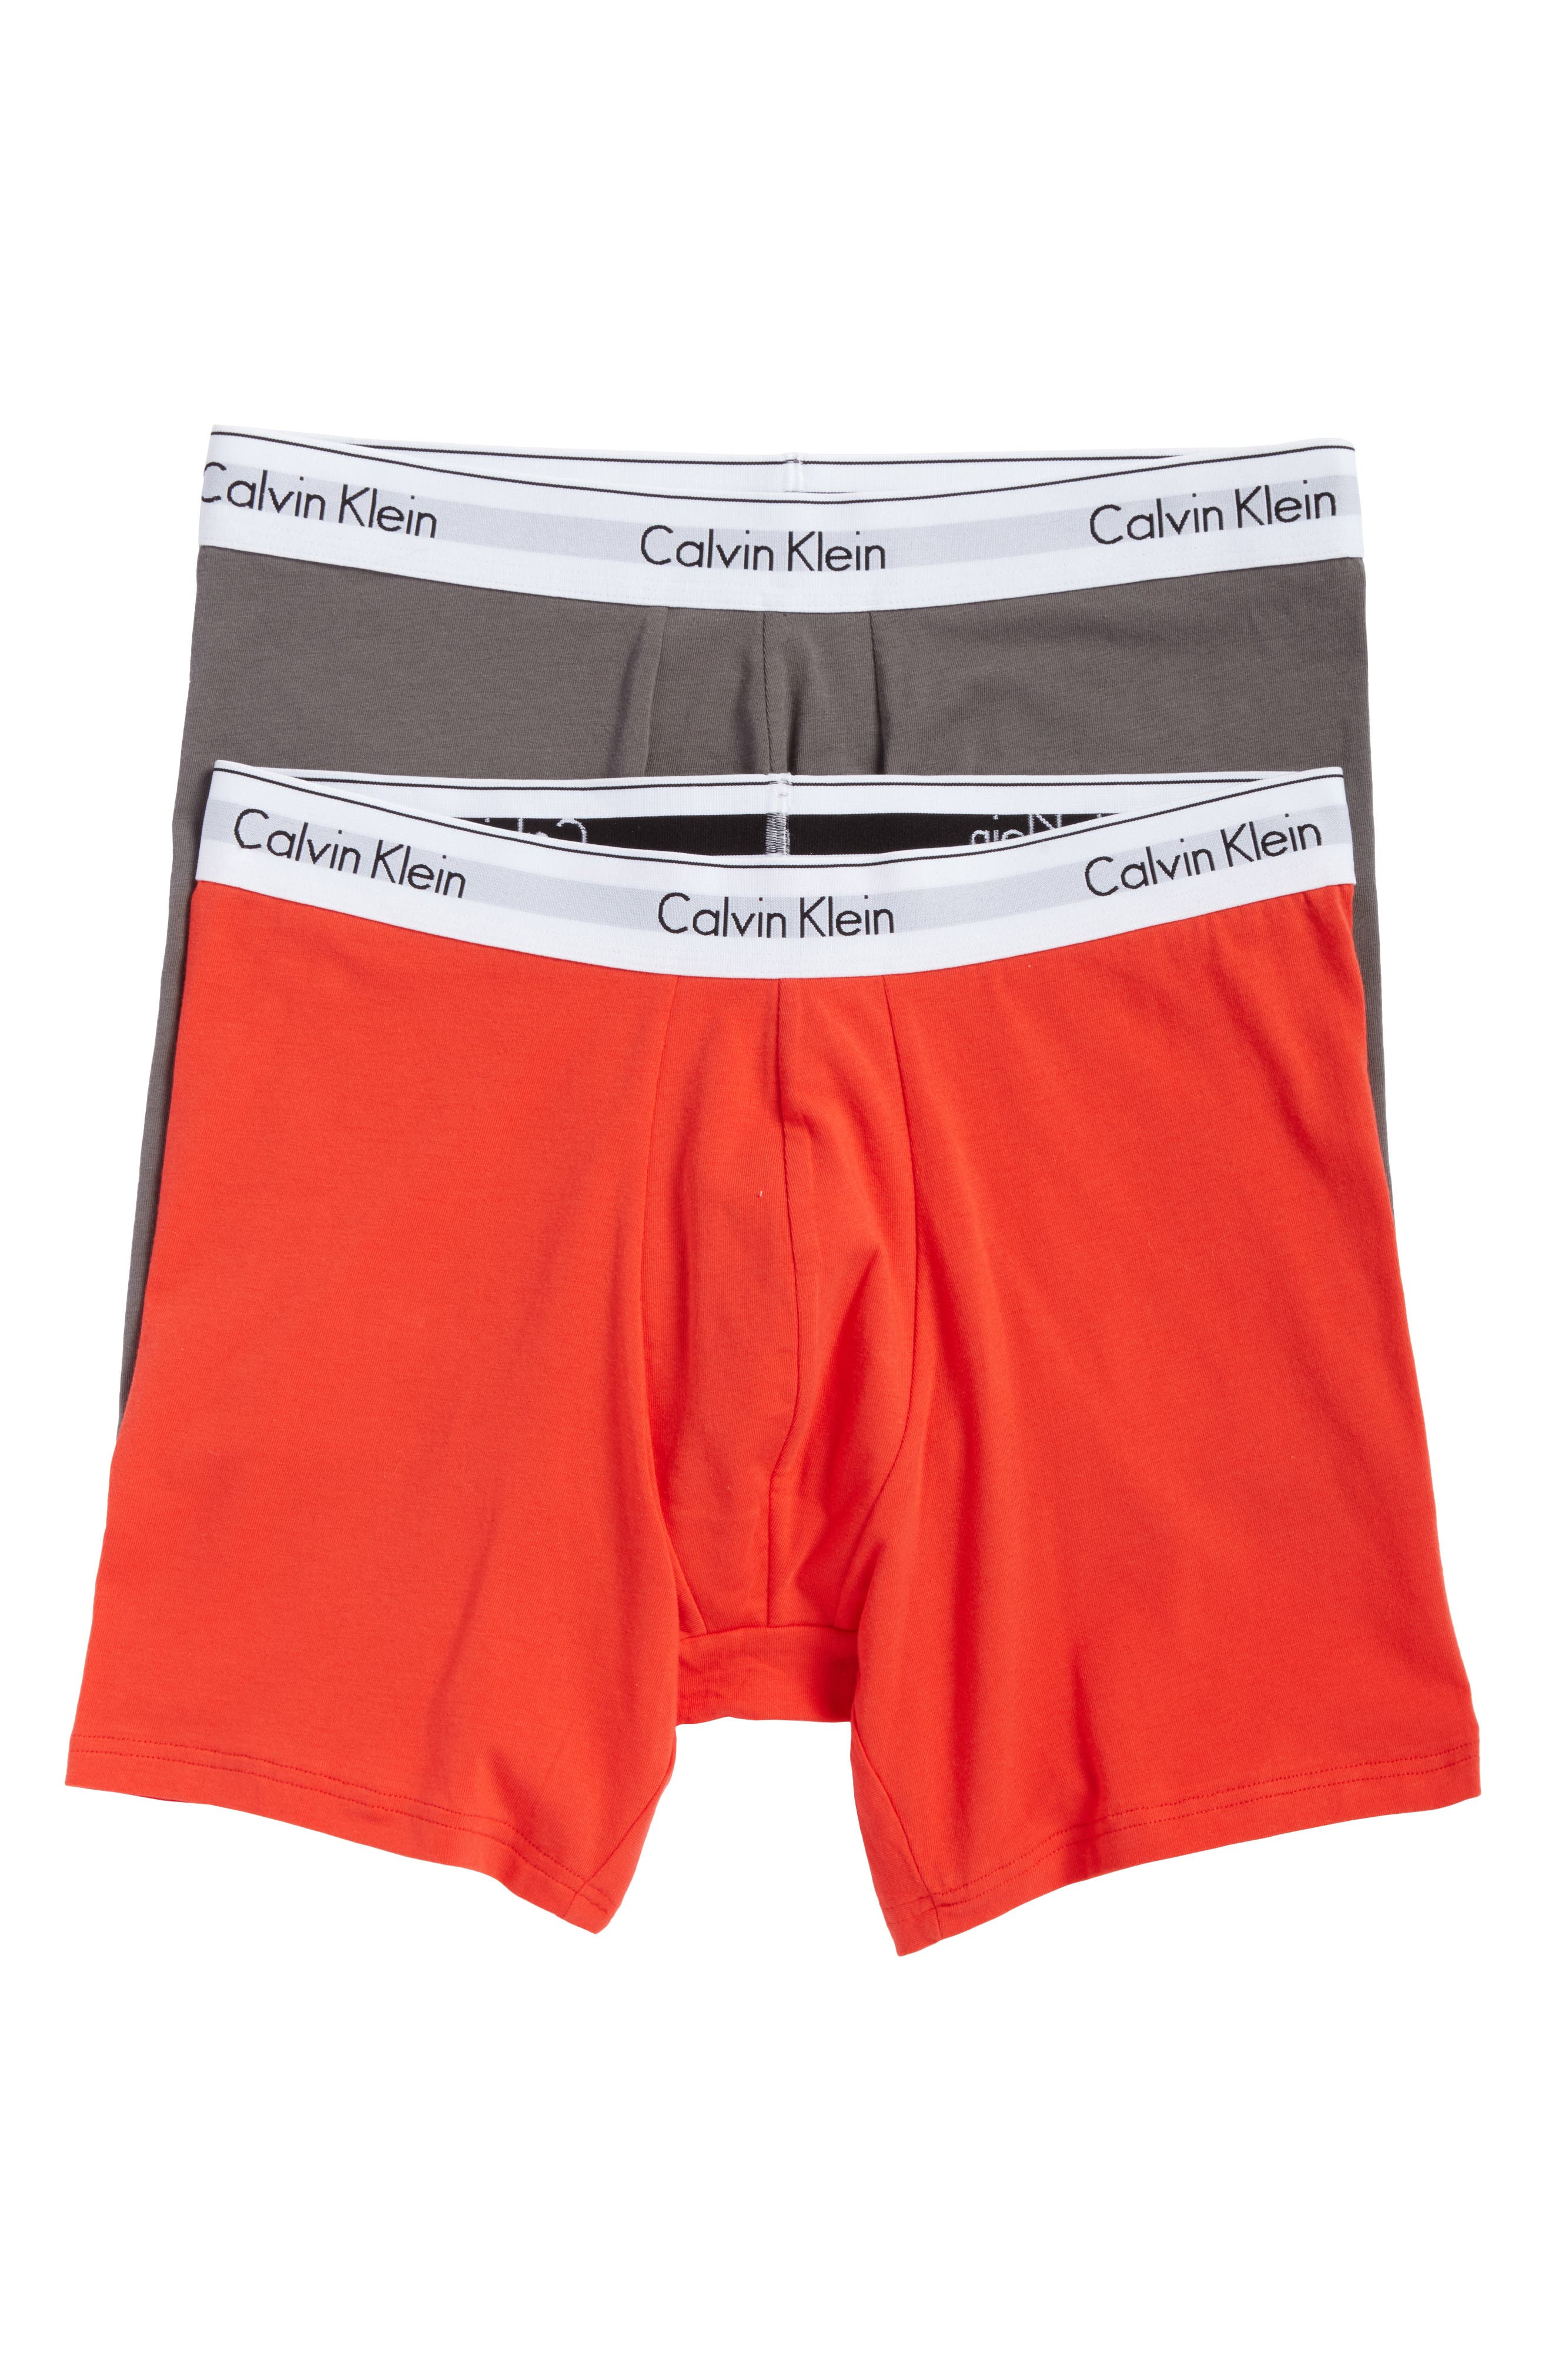 Calvin Klein Modern Assorted 2-Pack Stretch Cotton Boxer Briefs